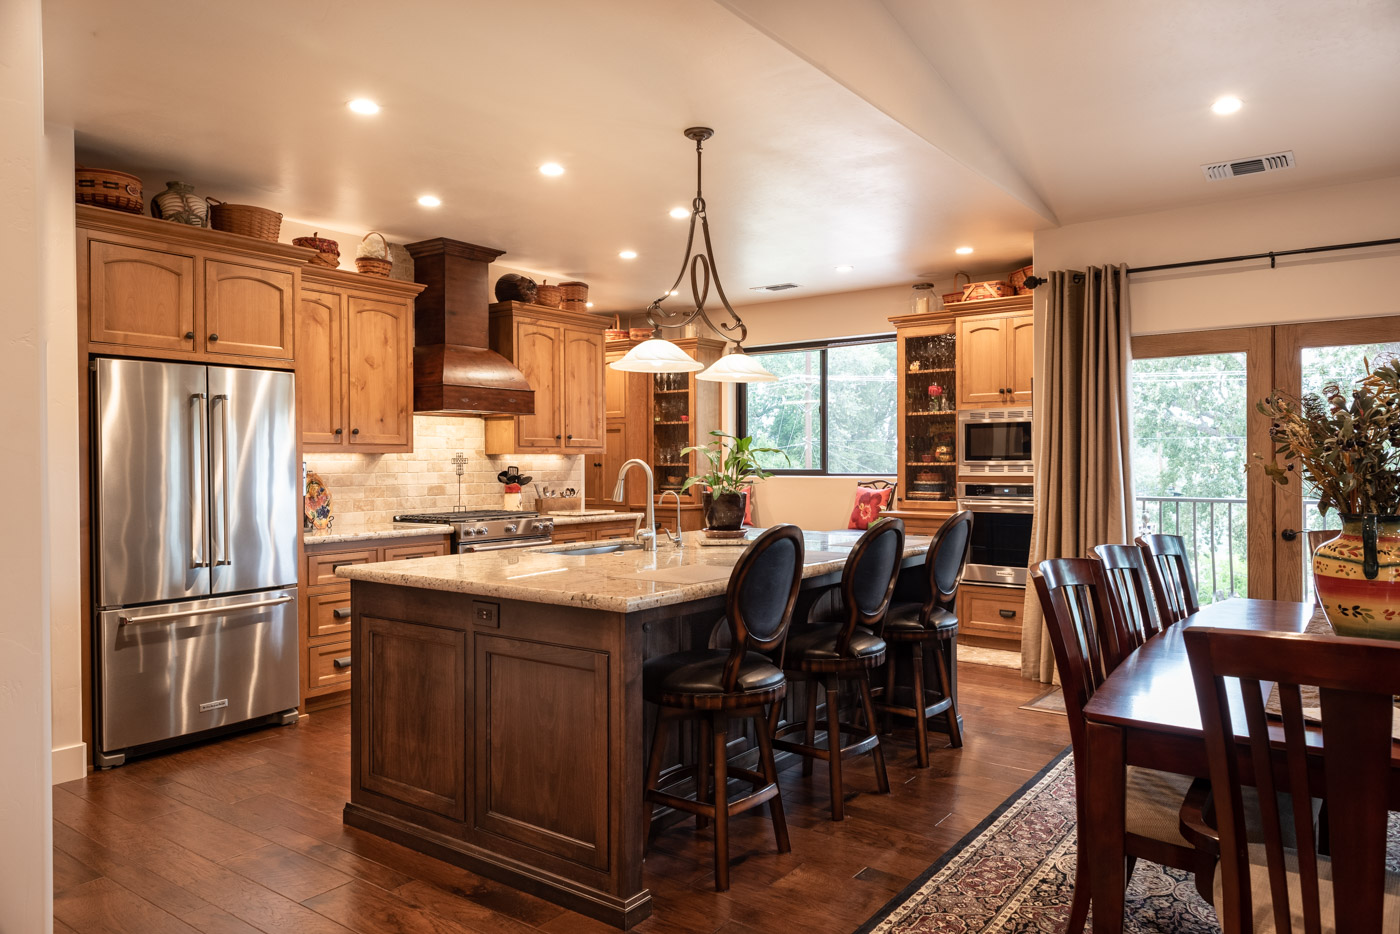 custom kitchen cabinetry copper faucet tuscan artisan and bathroom cabinets in atascadero stained alder wood